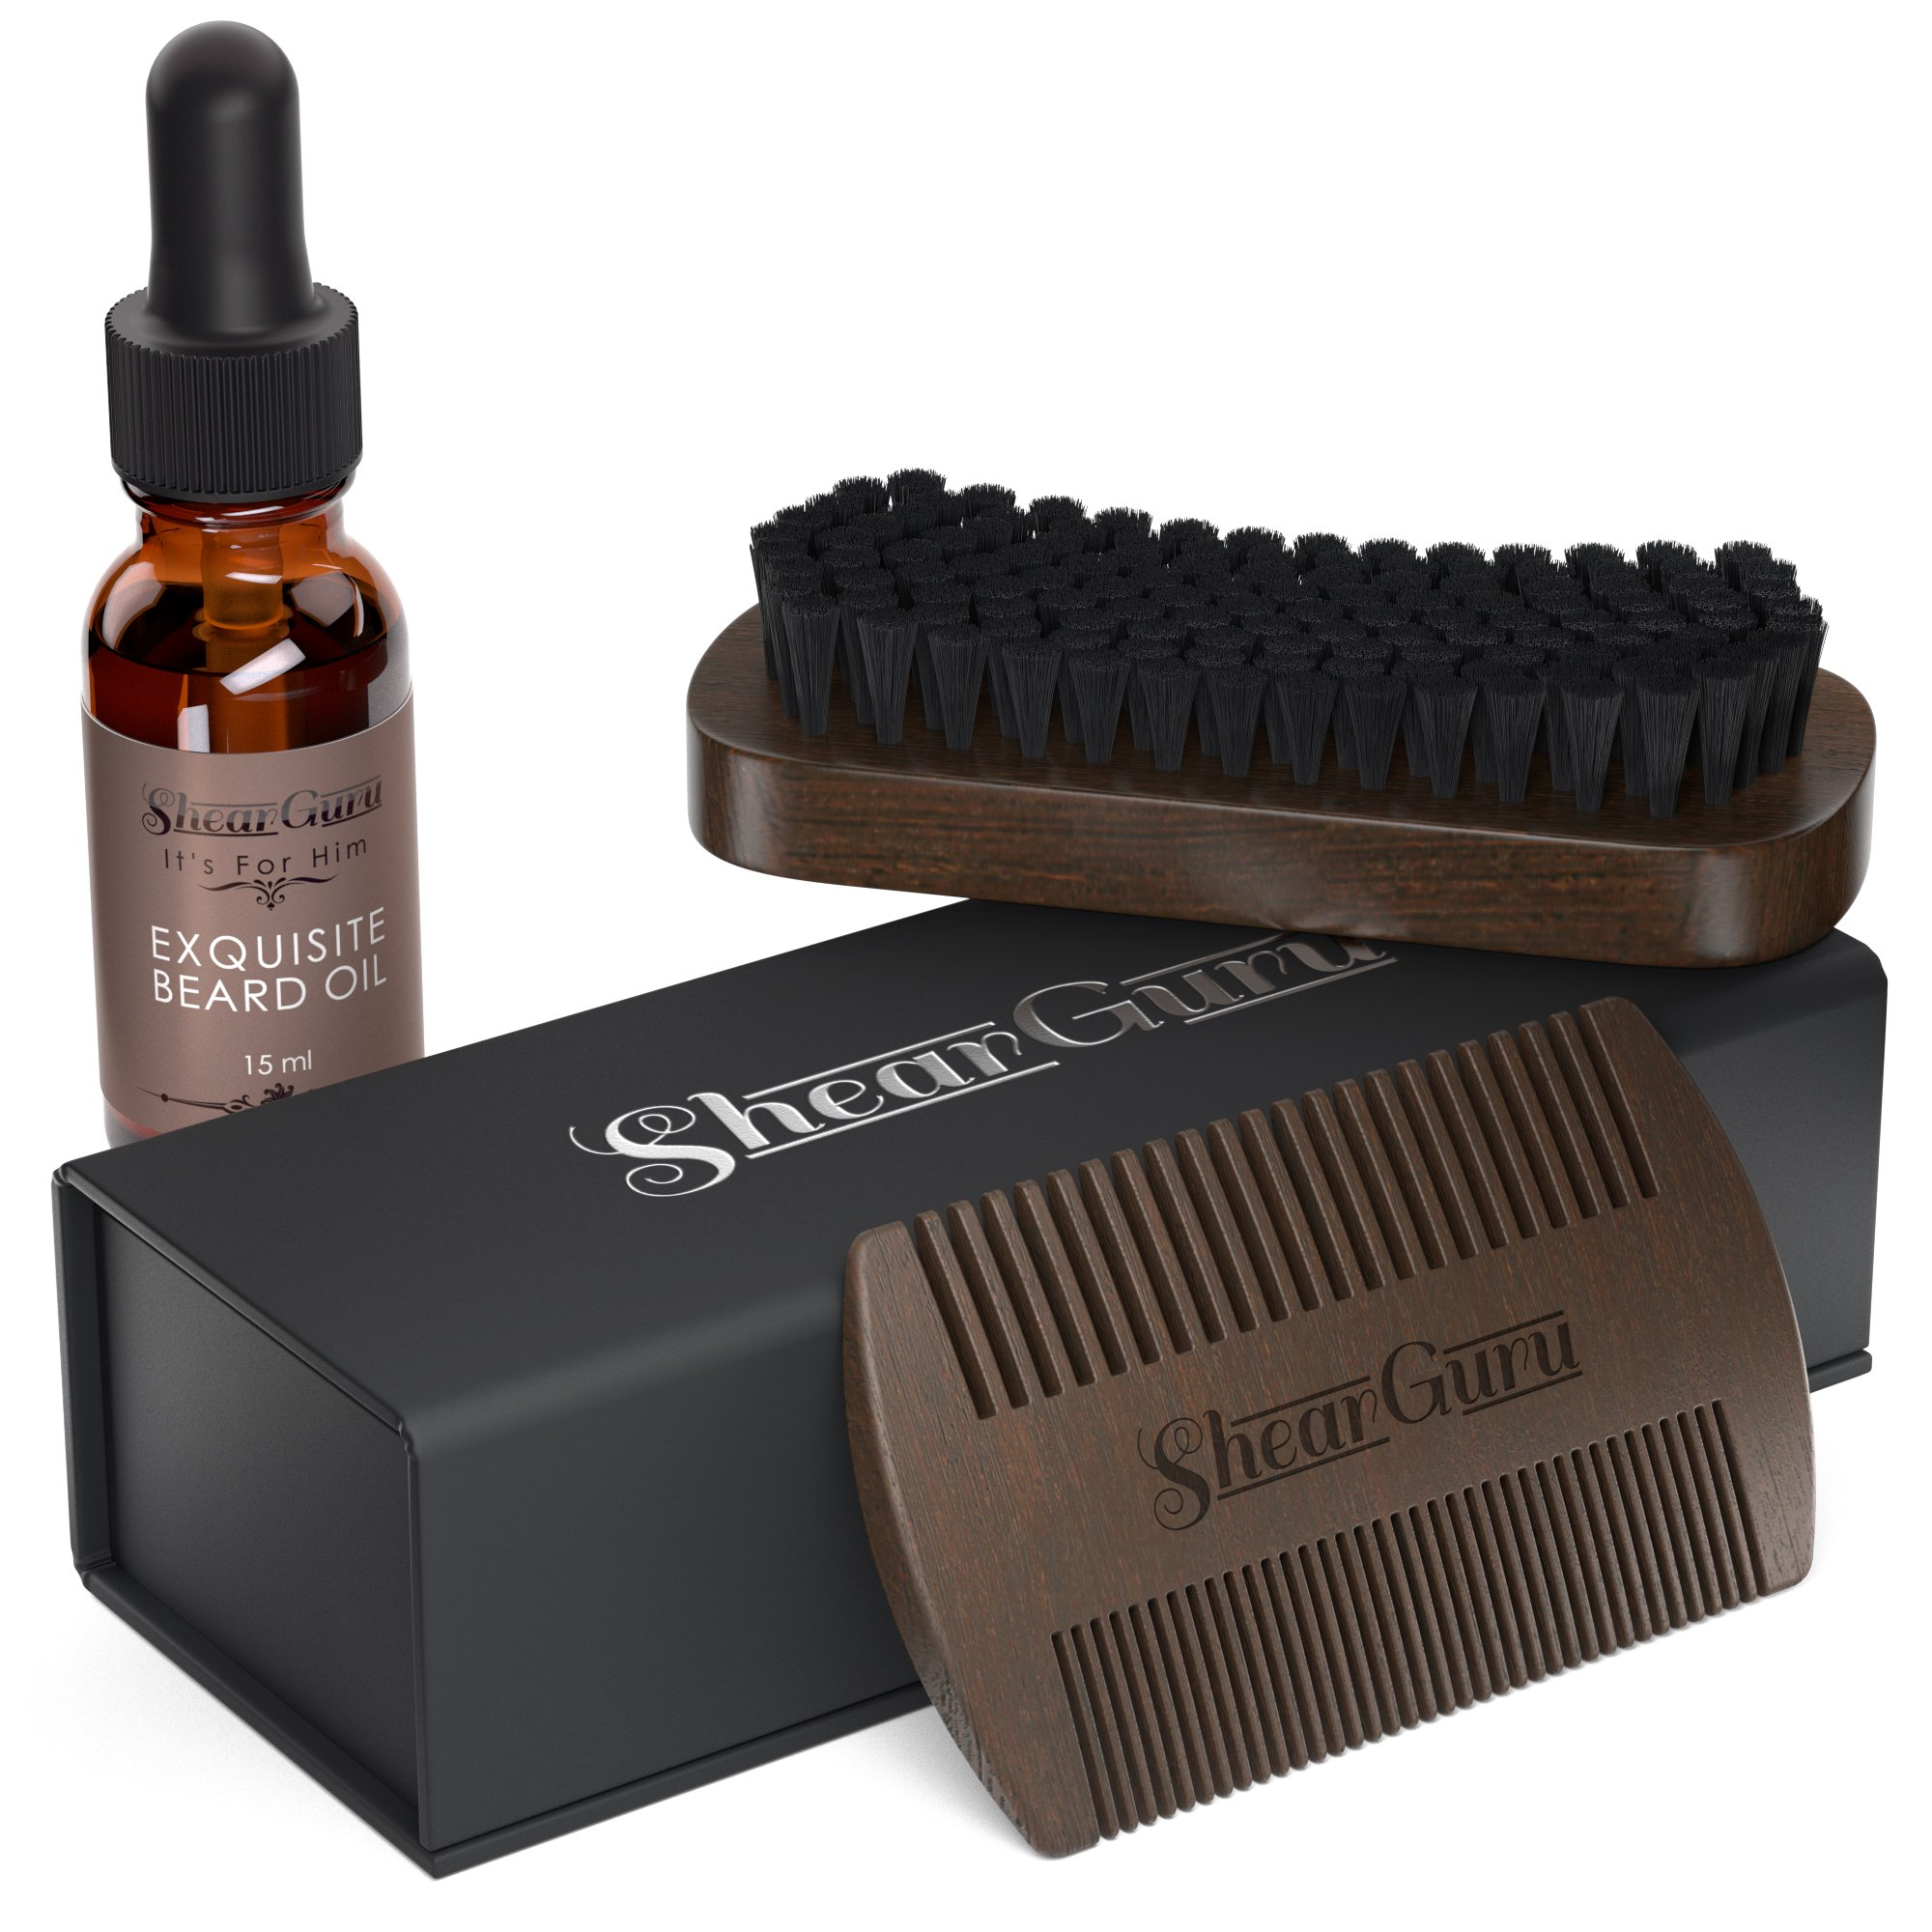 Natural Complete Care Beard Grooming Kit for Men– Includes 100% Boar Bristle Bamboo Brush, Handmade Wood Comb and Beard Oil that Promotes Beard Health and Growth (regular)